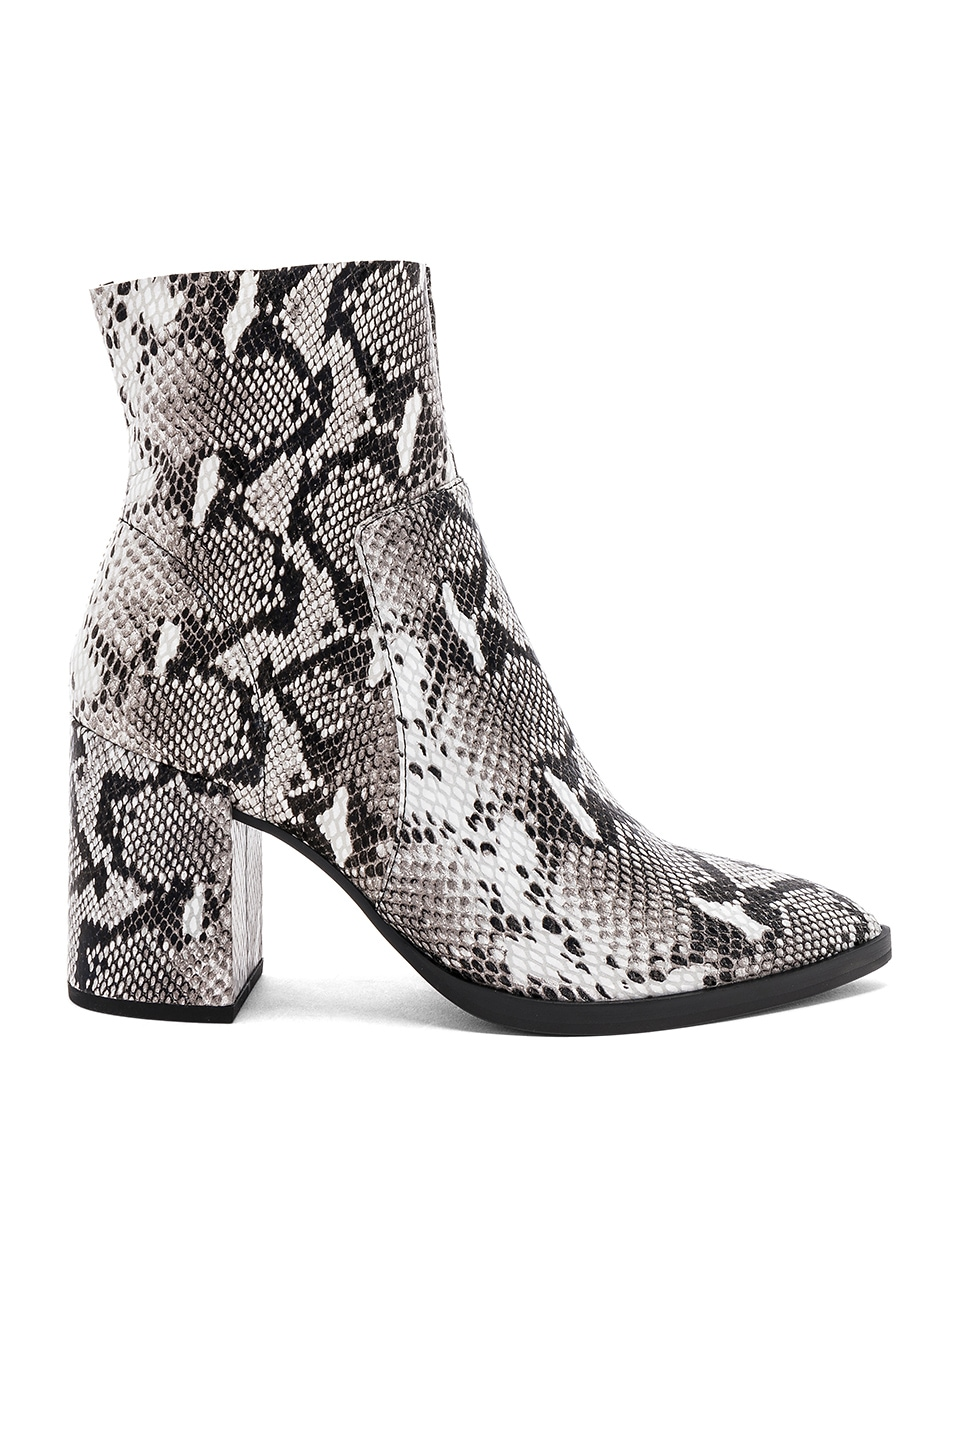 Tony Bianco Brazen Bootie in Natural Snake